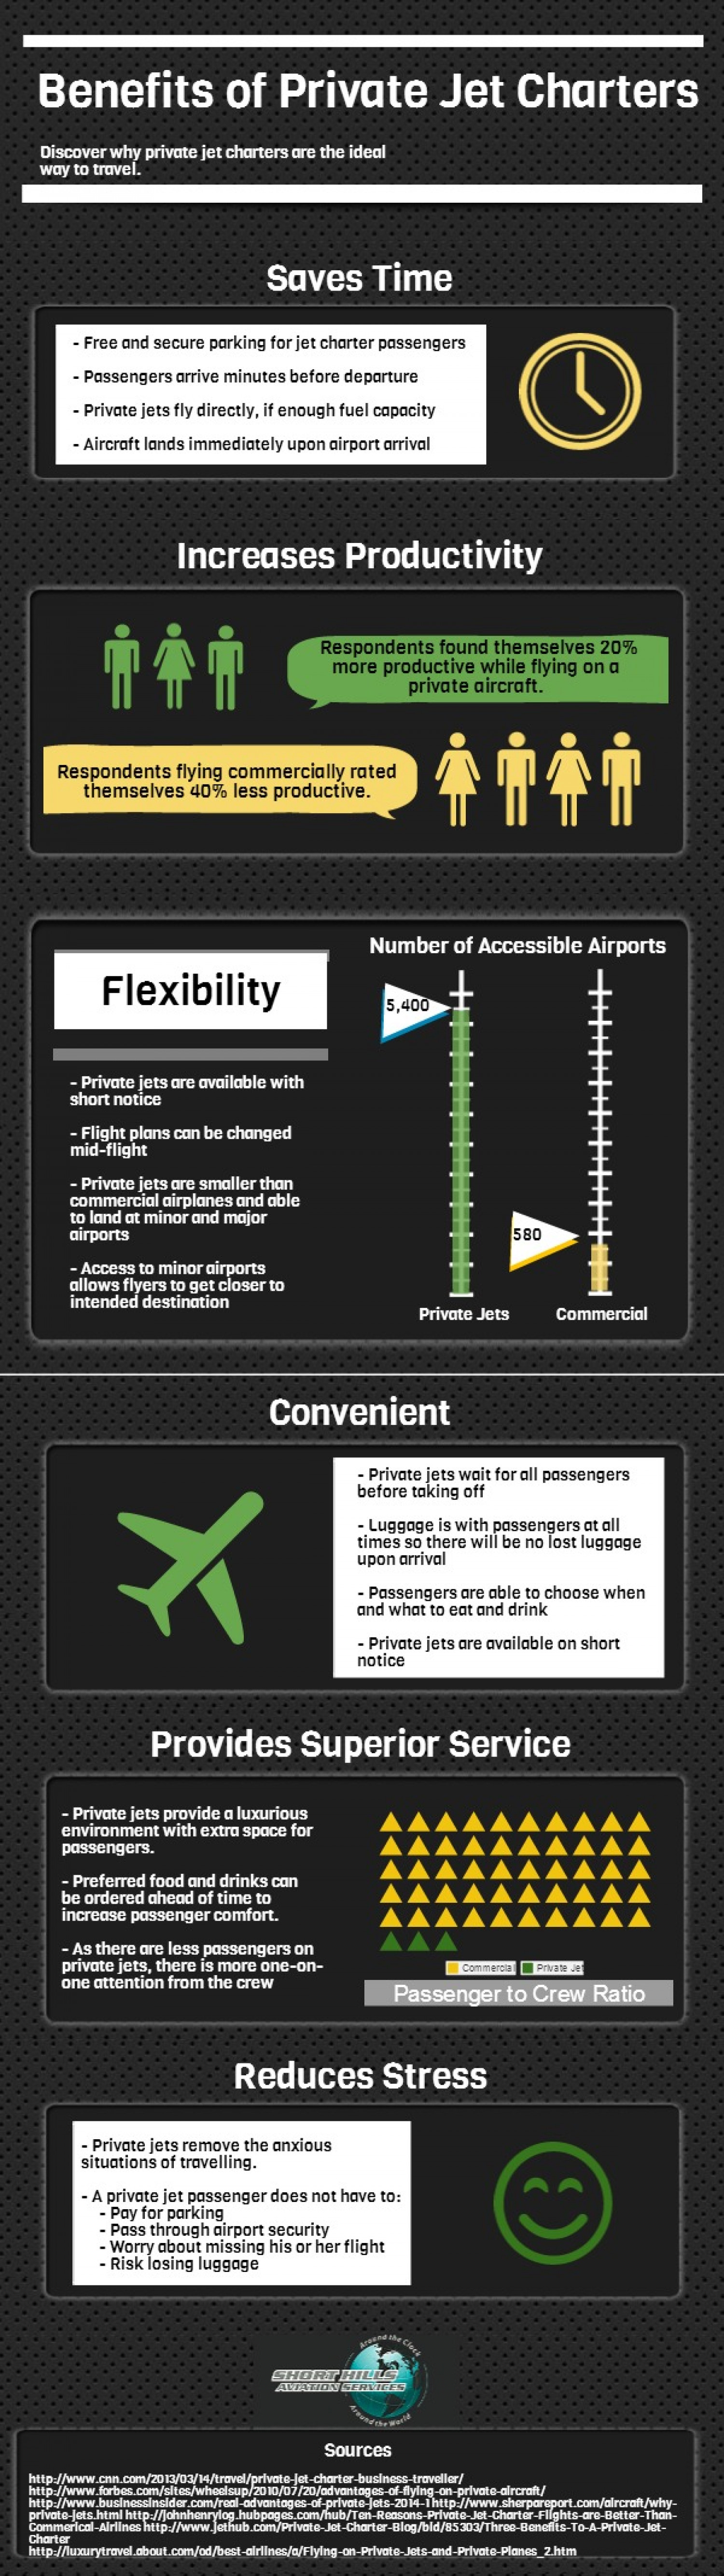 Benefits of Private Jet Charters Infographic